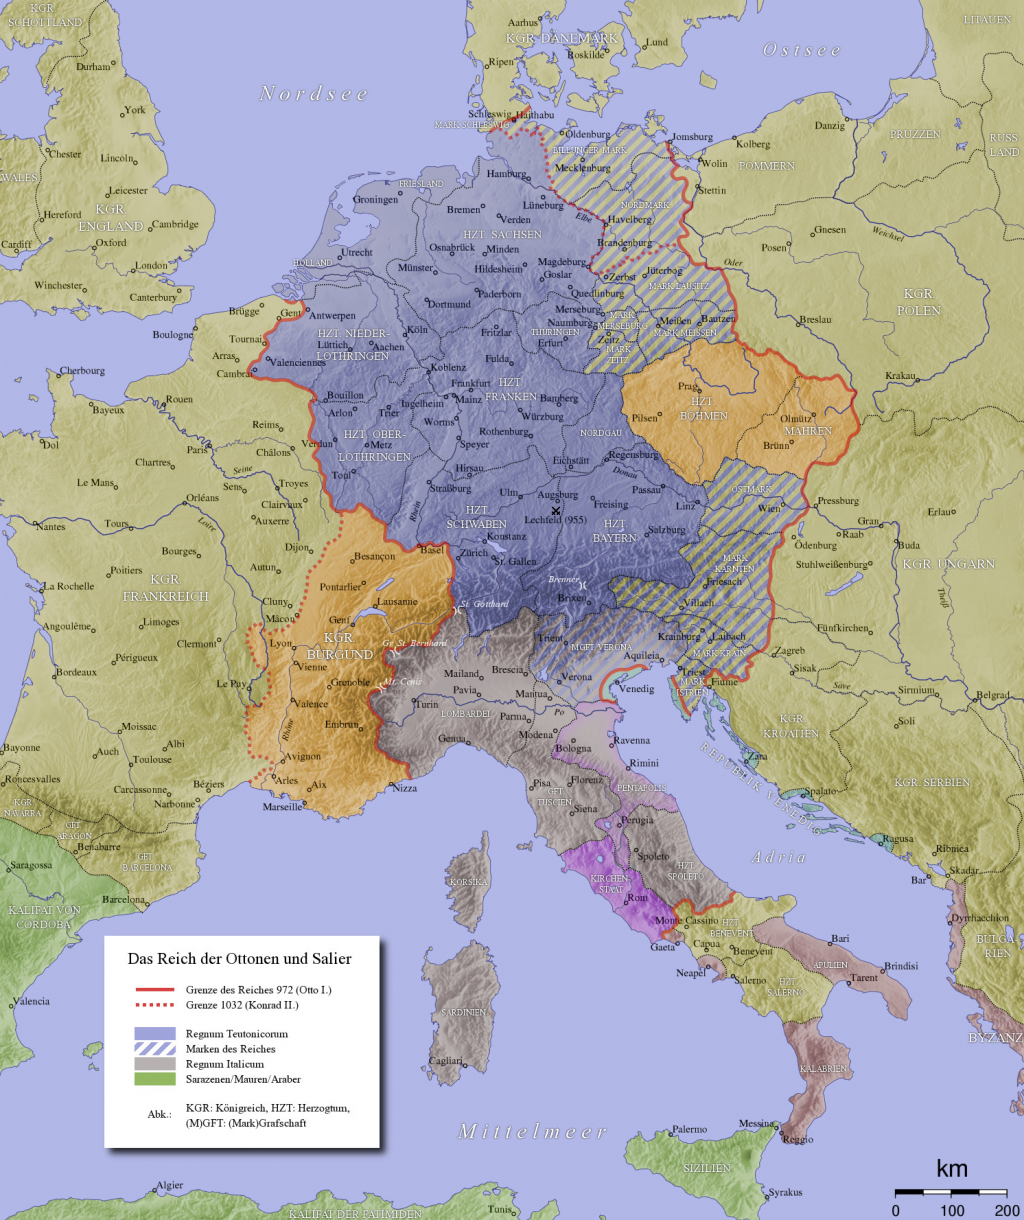 a essay on otto the great writework english map of the holy r empire in the 10th century